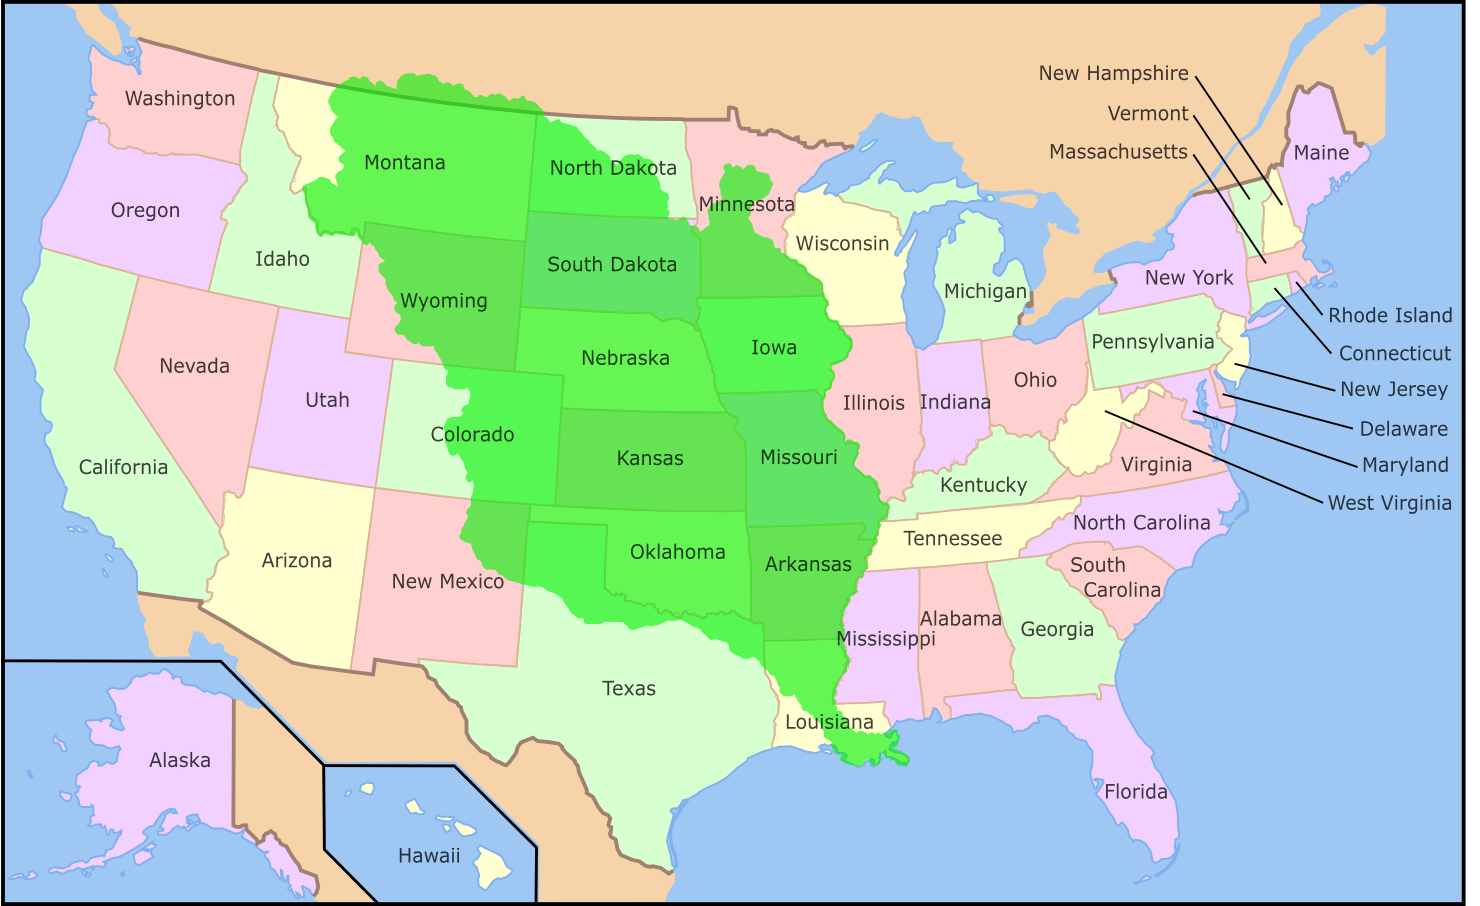 Louisiana Purchase Announced on July 4th 1803 - on